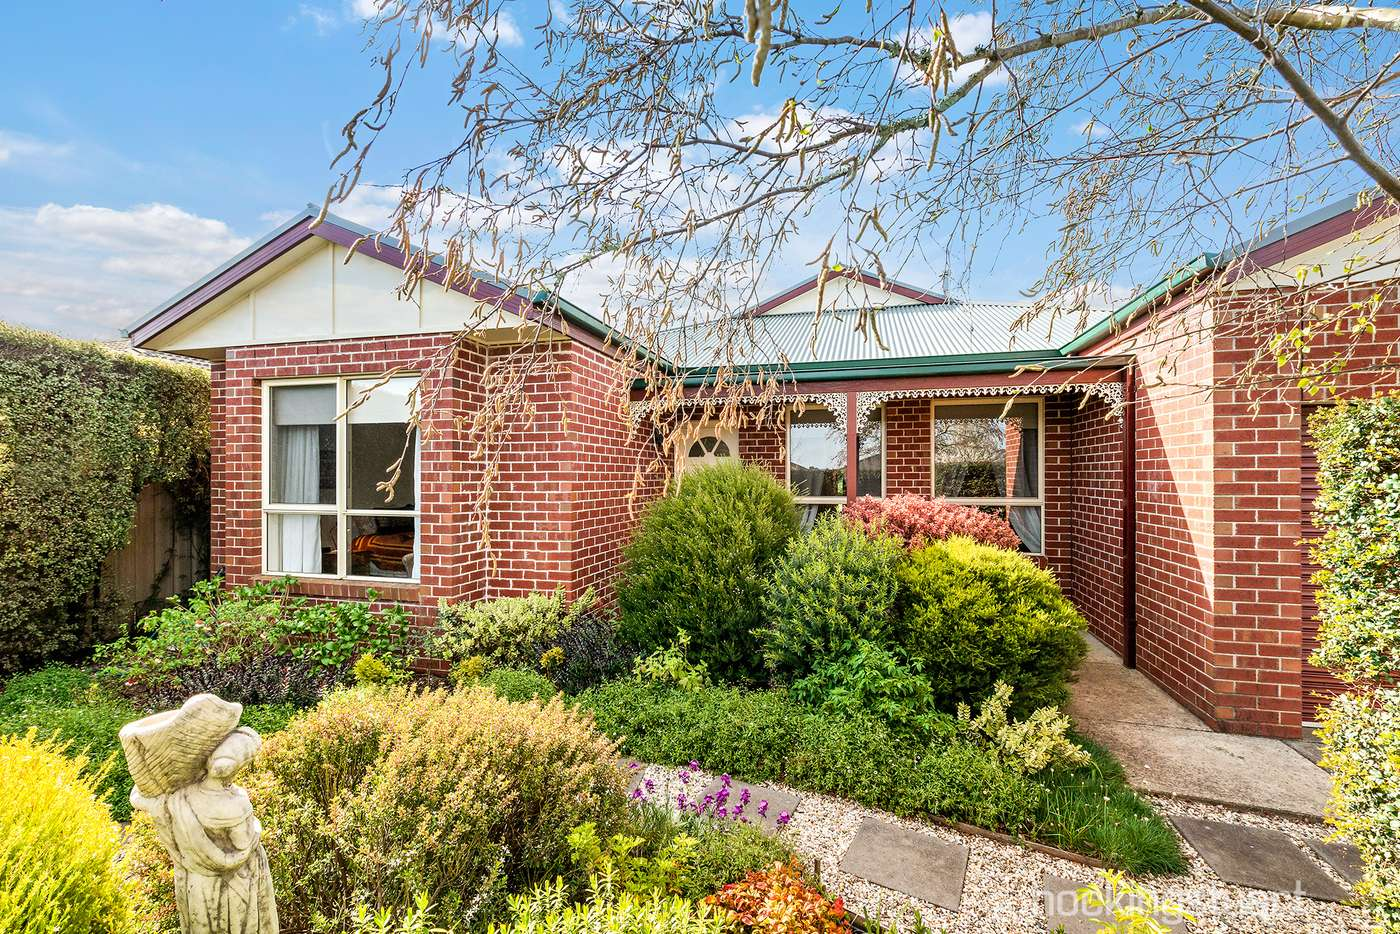 Main view of Homely house listing, 168 Cuthberts Road, Alfredton VIC 3350